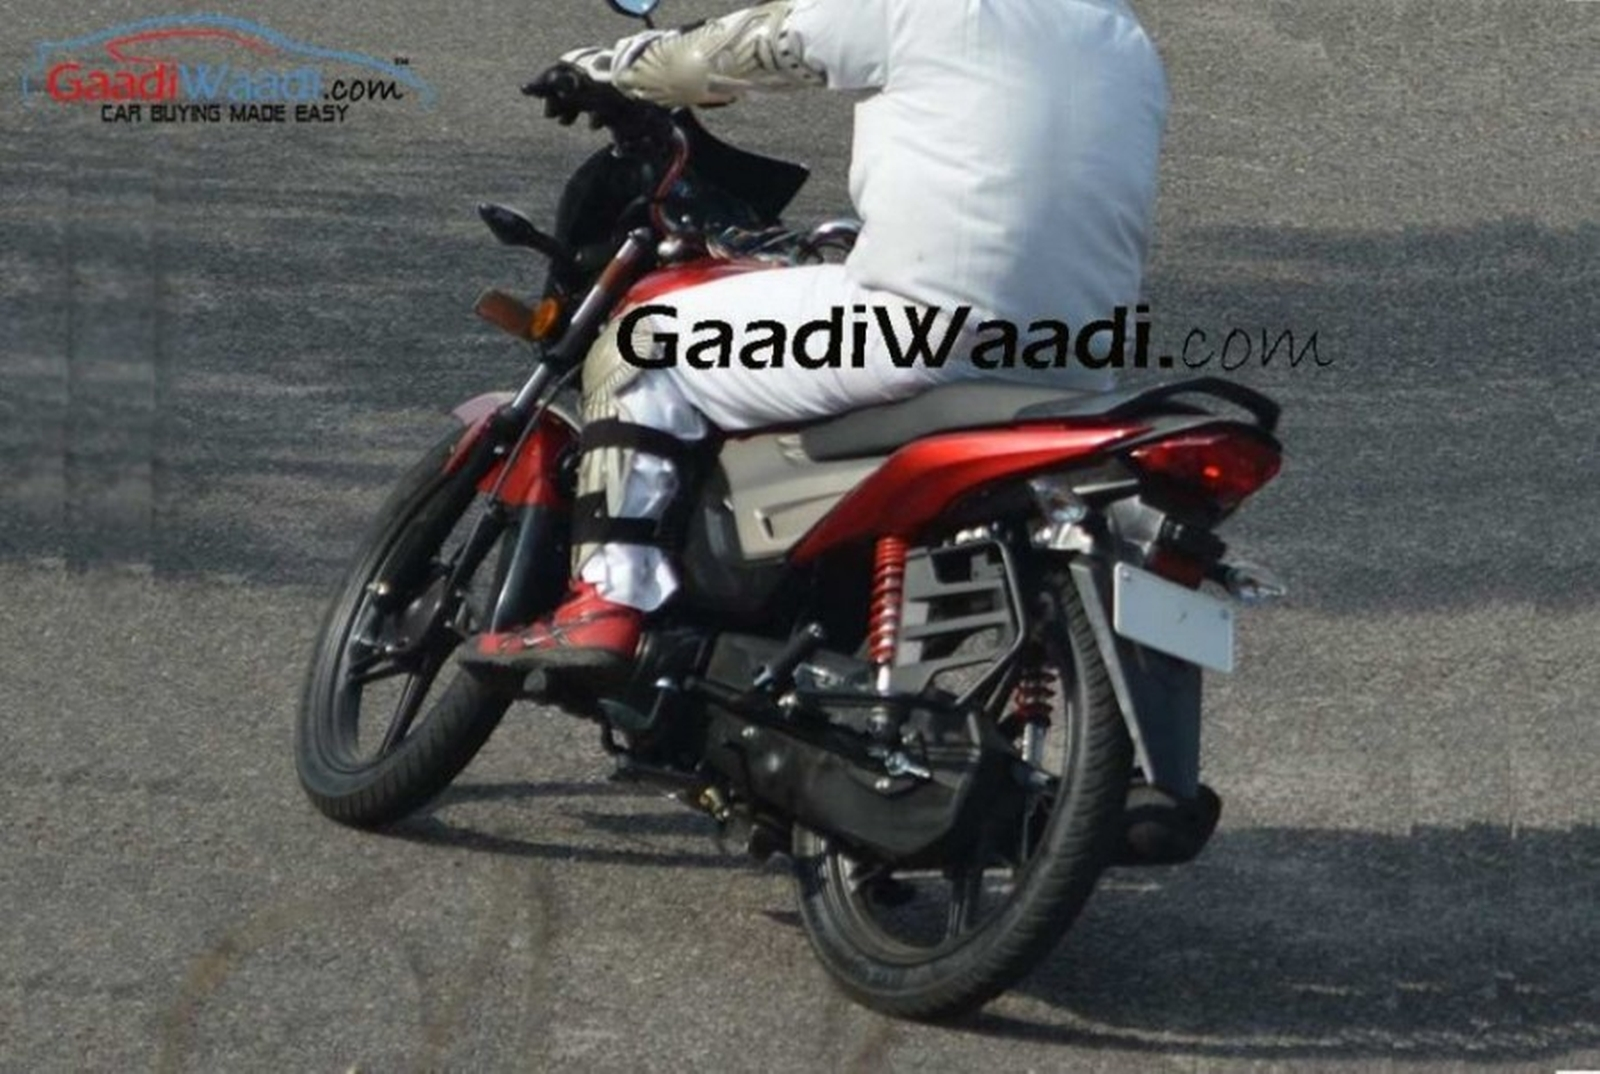 Honda To Launch The Cb Shine Sp On November 19 Spied Motoroids